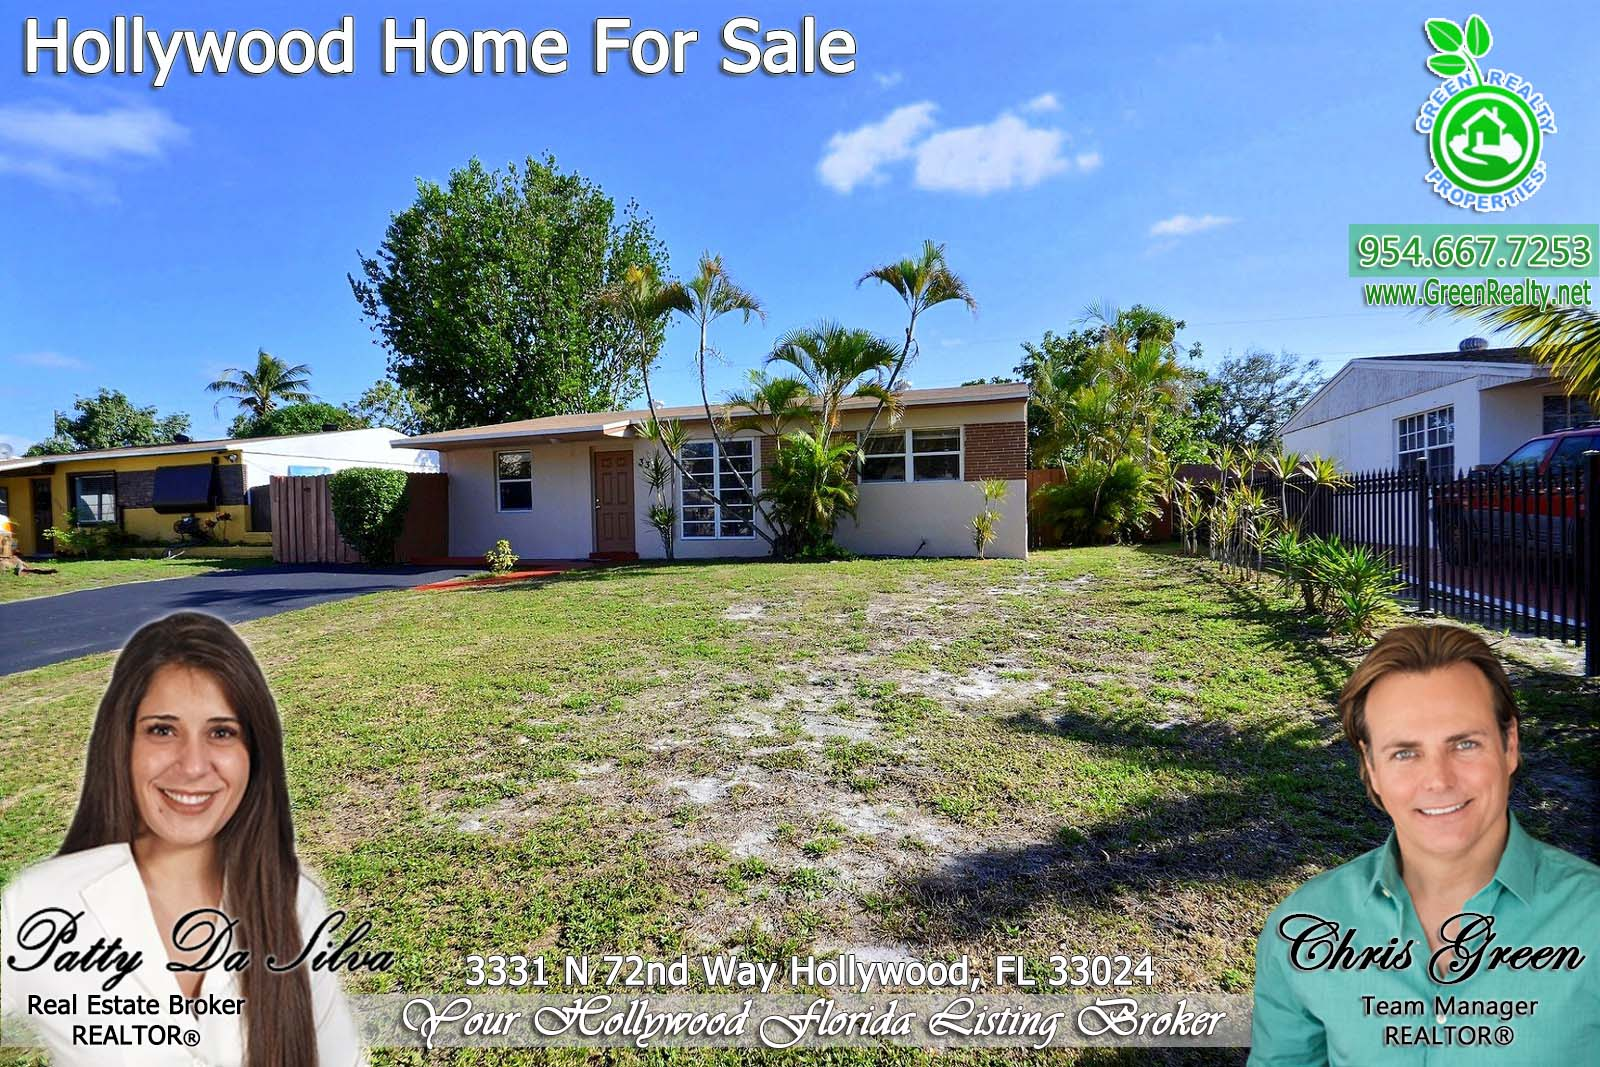 20 Homes For Sale in Hollywood Florida (3)